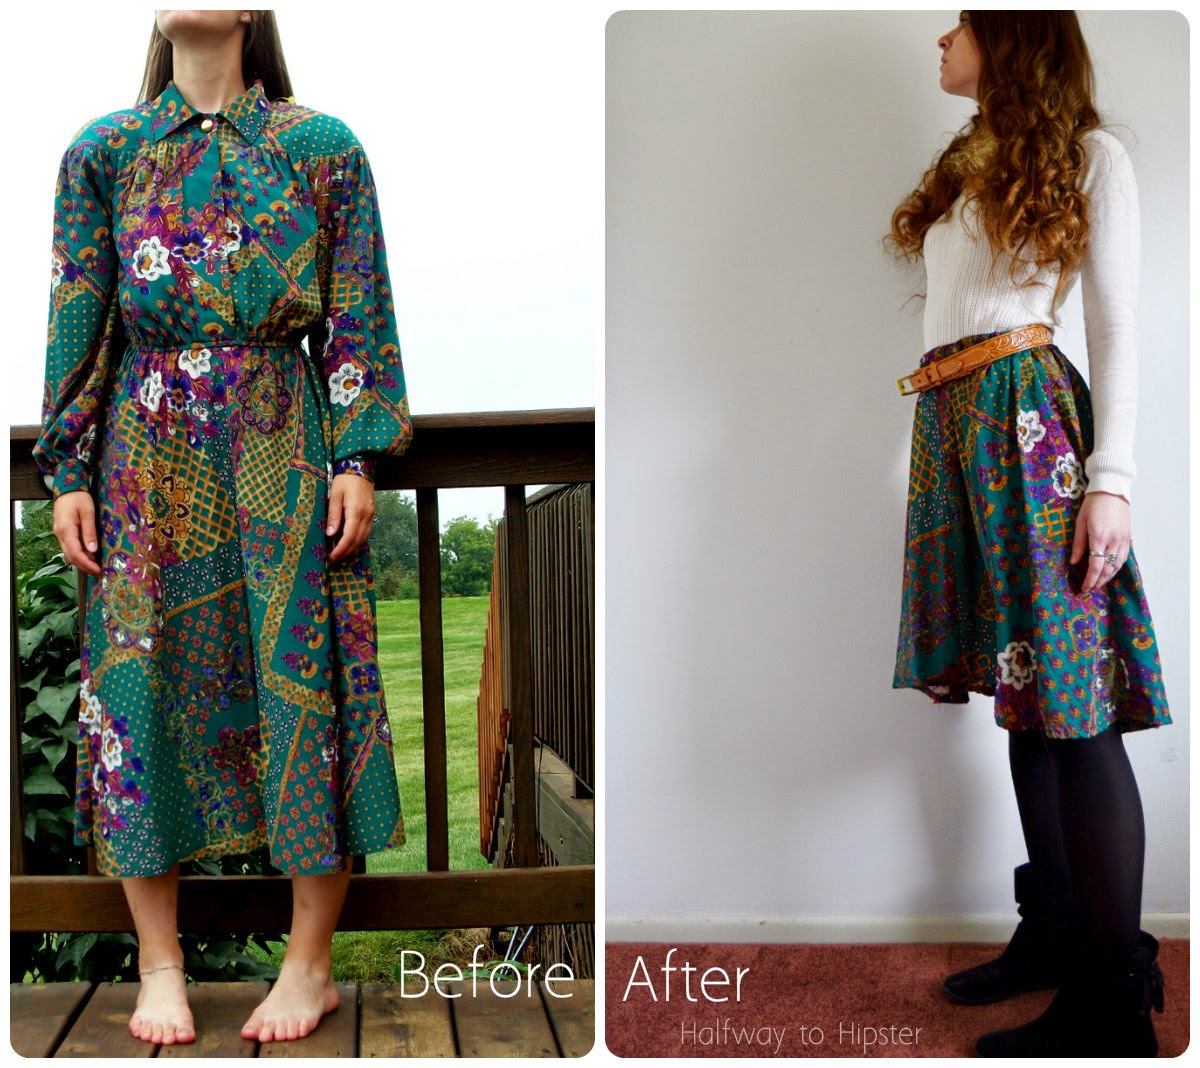 80's Dress to Skirt Refashion